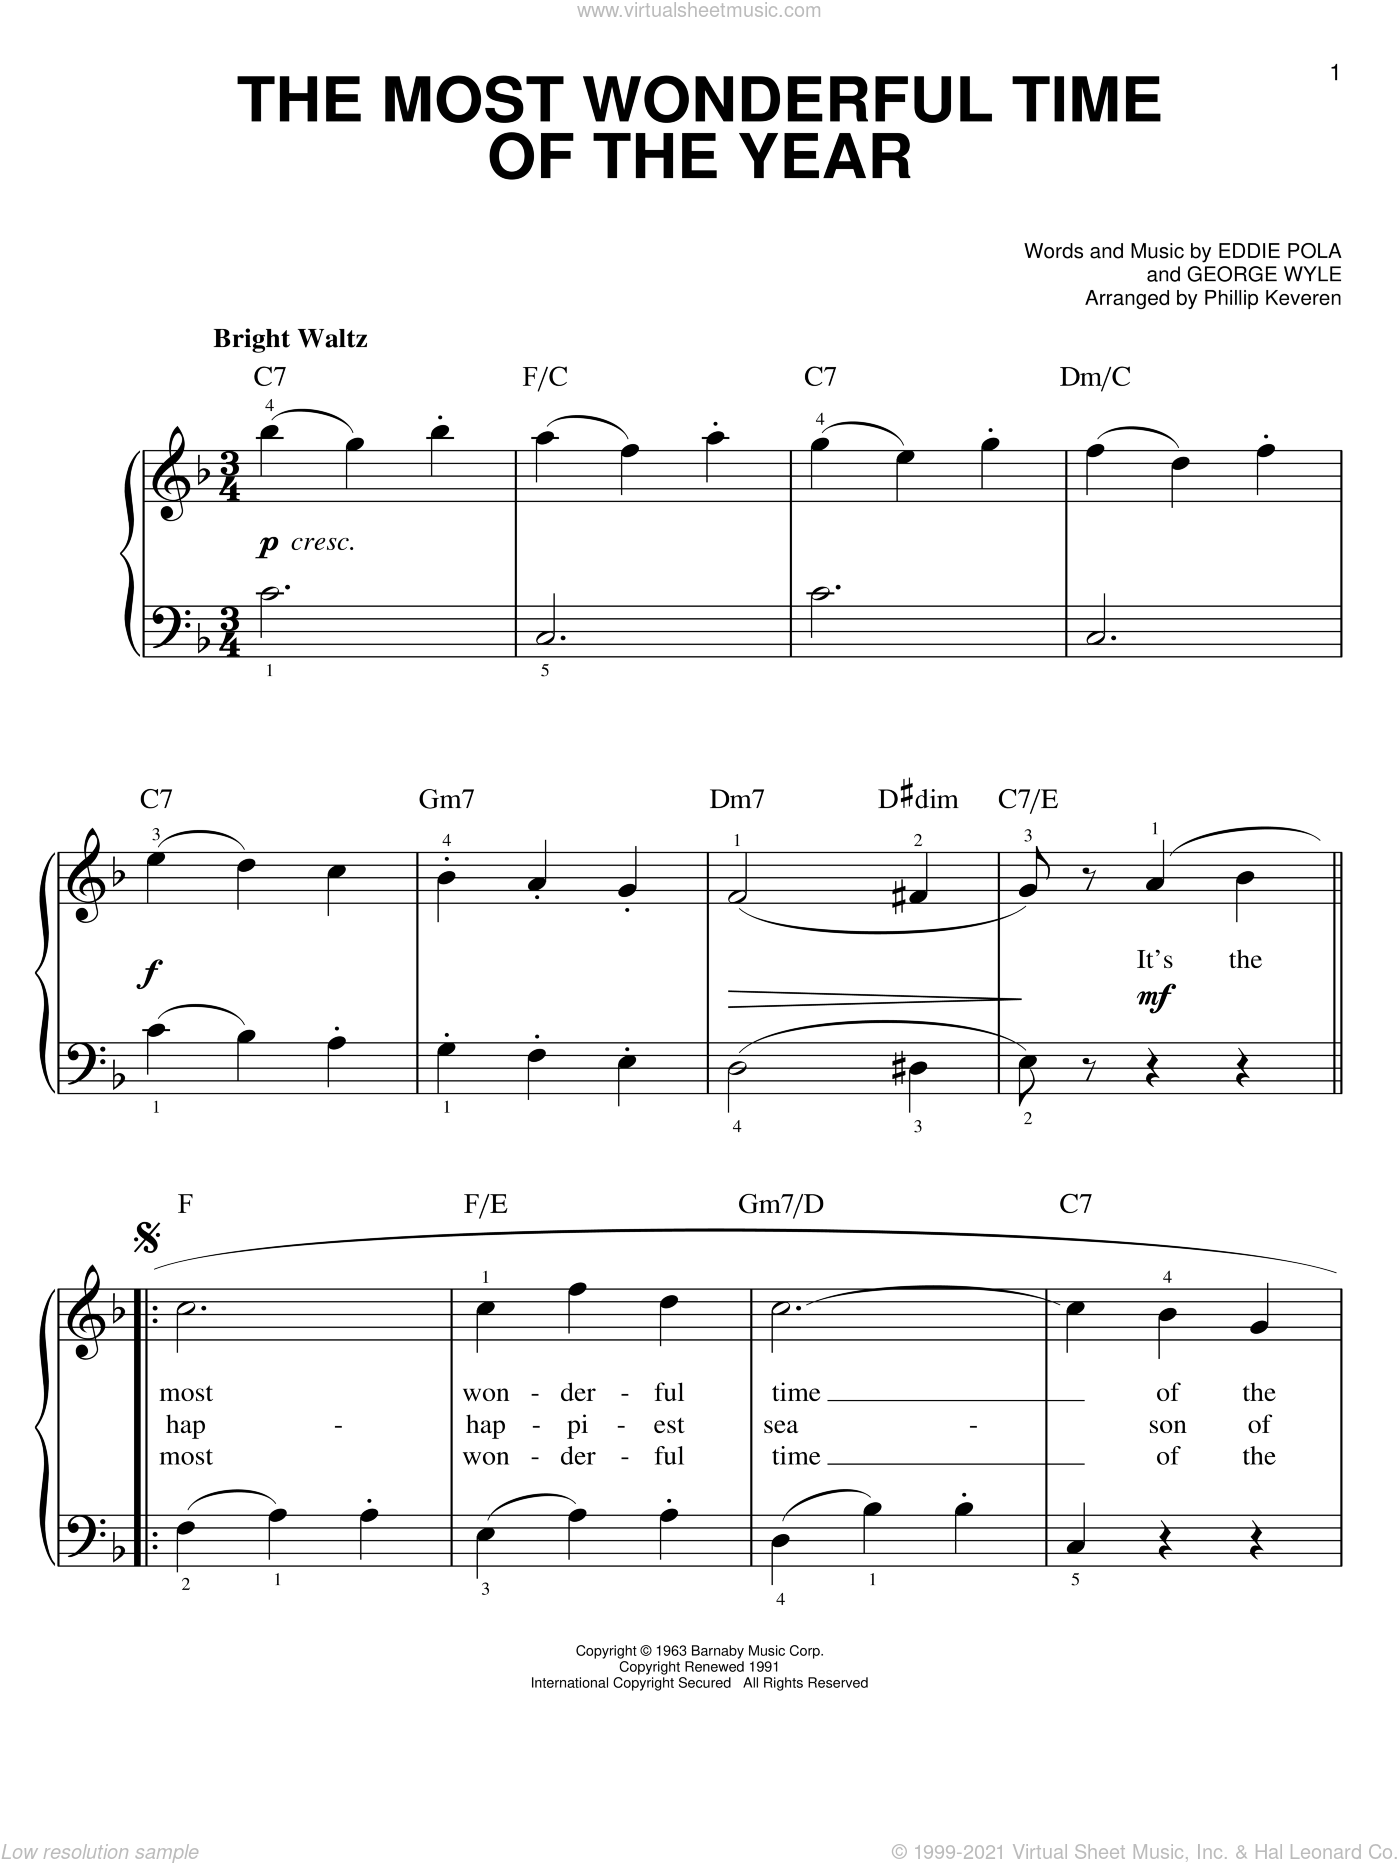 The Most Wonderful Time Of The Year sheet music for piano solo by Andy Williams, Phillip Keveren, Eddie Pola and George Wyle, easy skill level